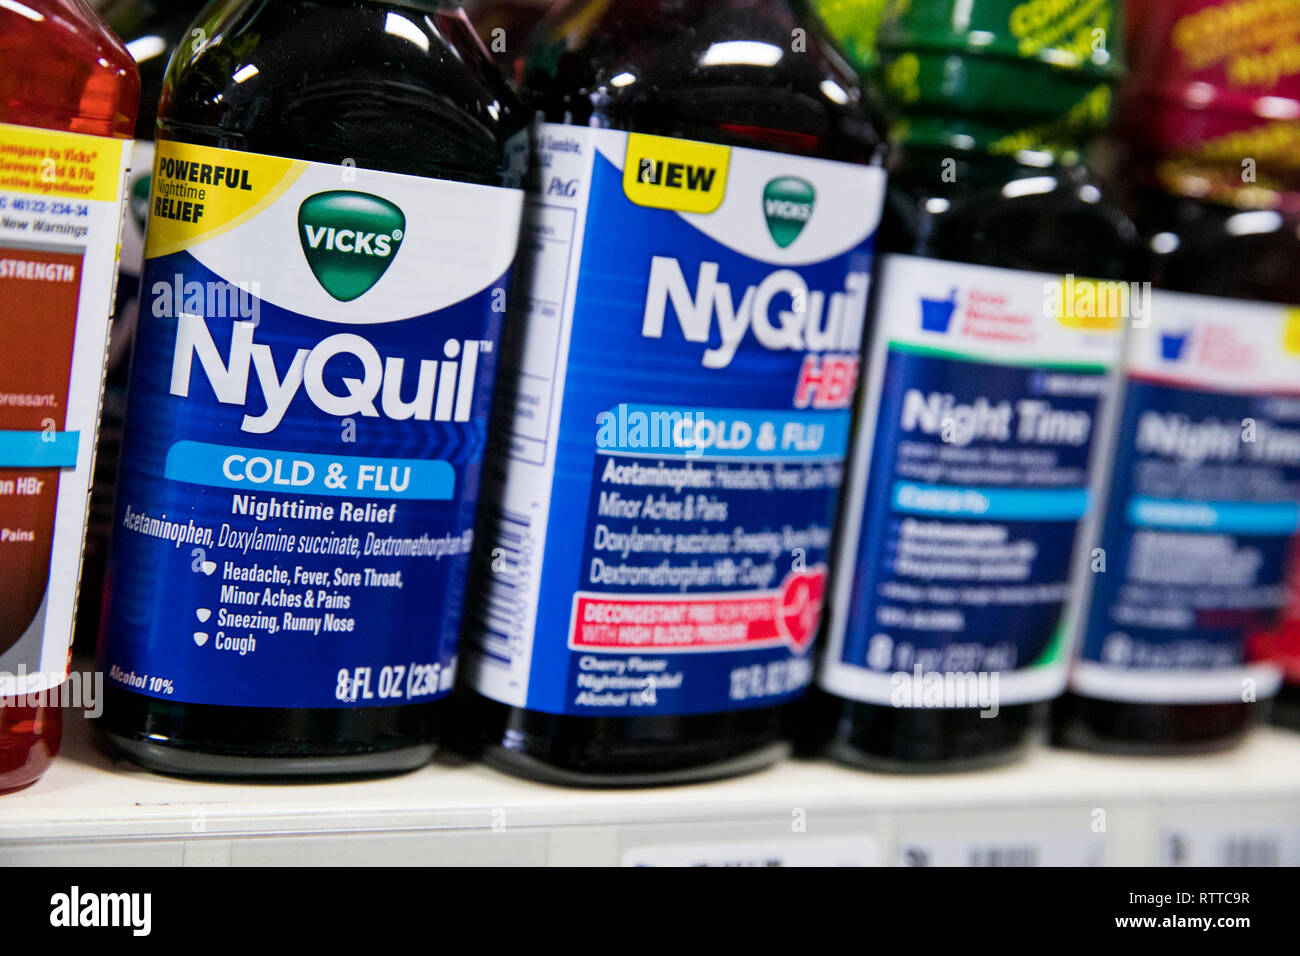 NyQuil and DayQuil over-the-counter cold medicine photographed. - Stock Image